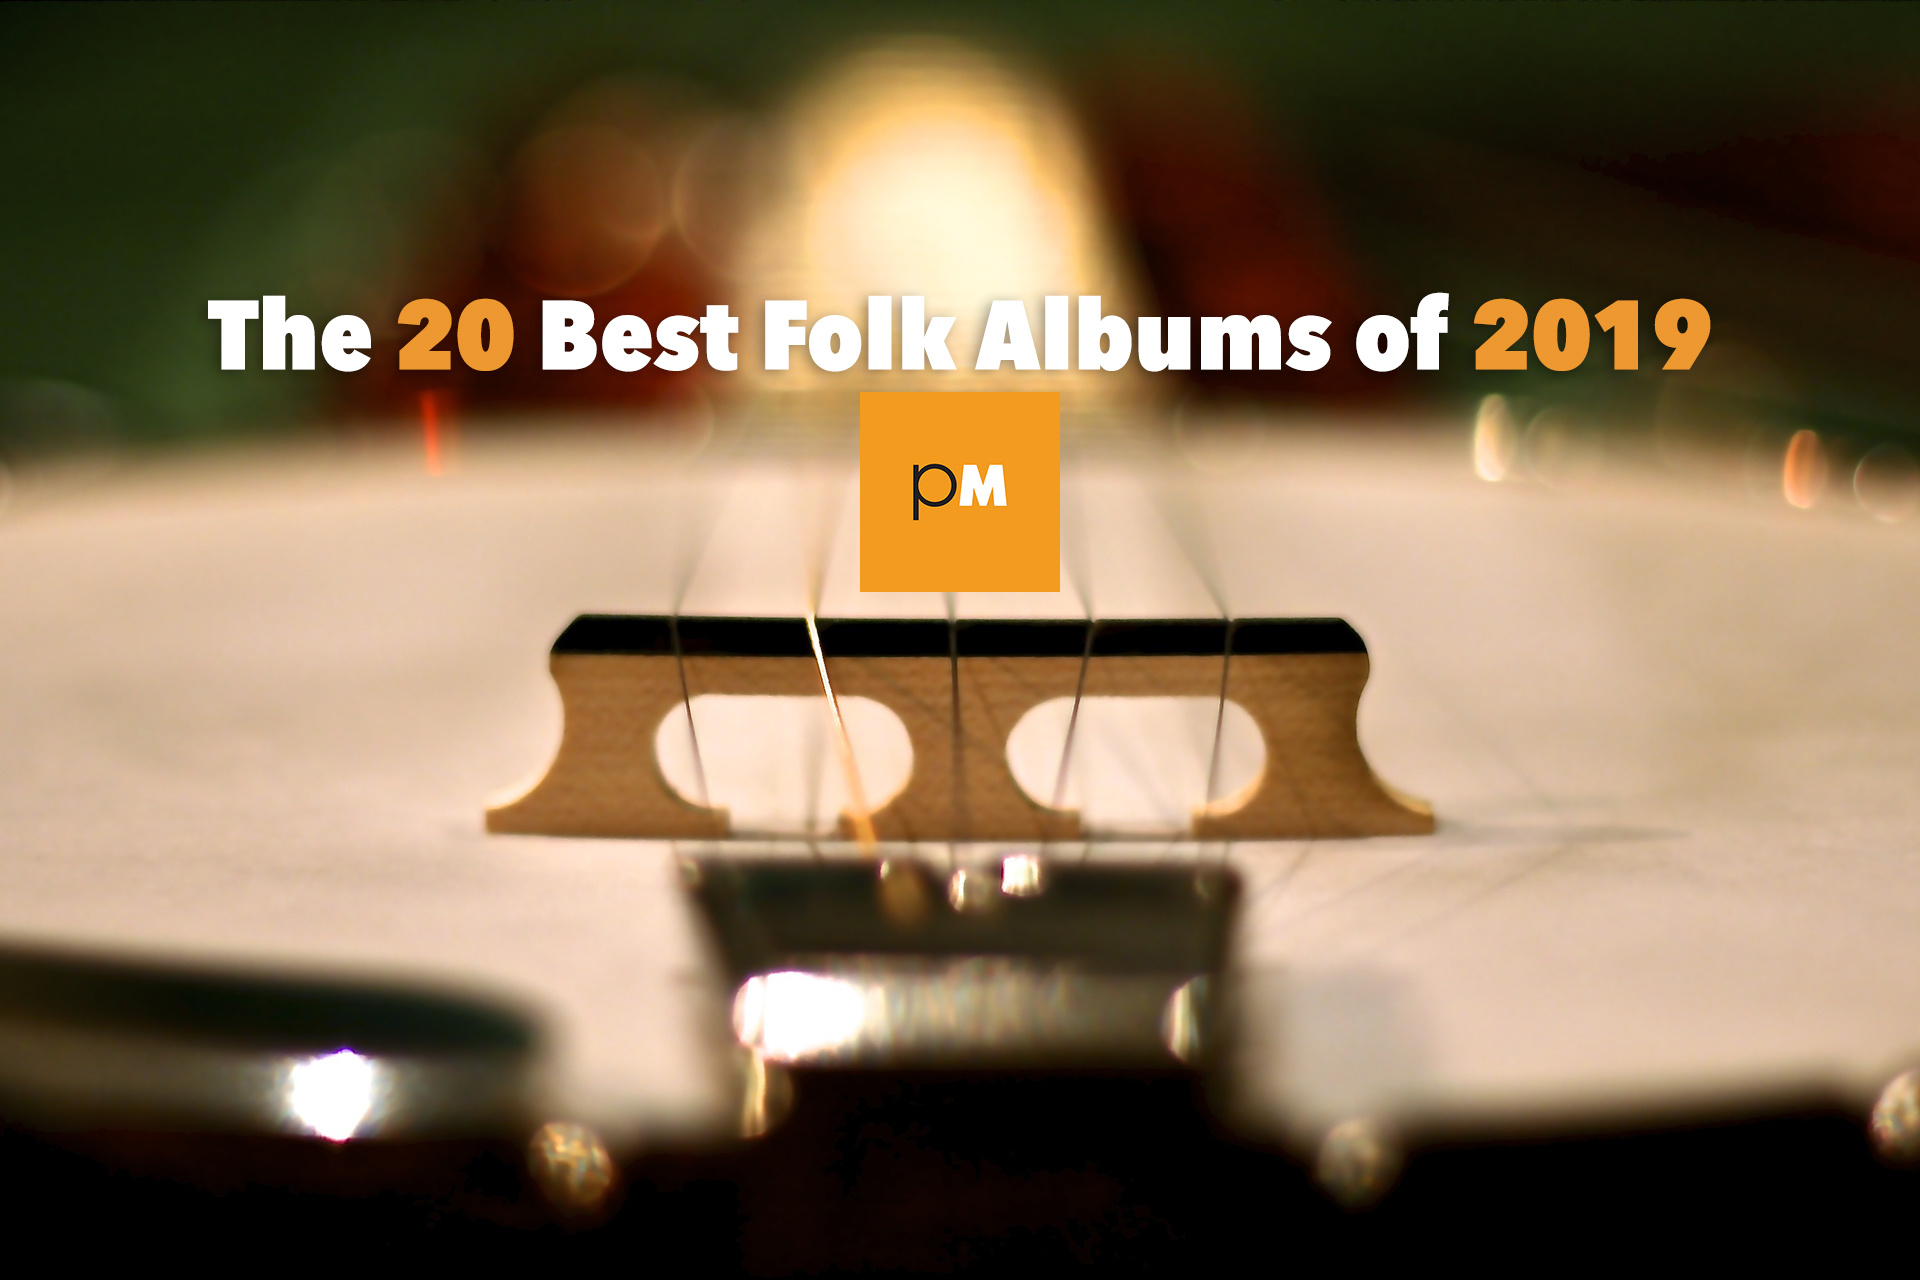 The 20 Best Folk Albums of 2019